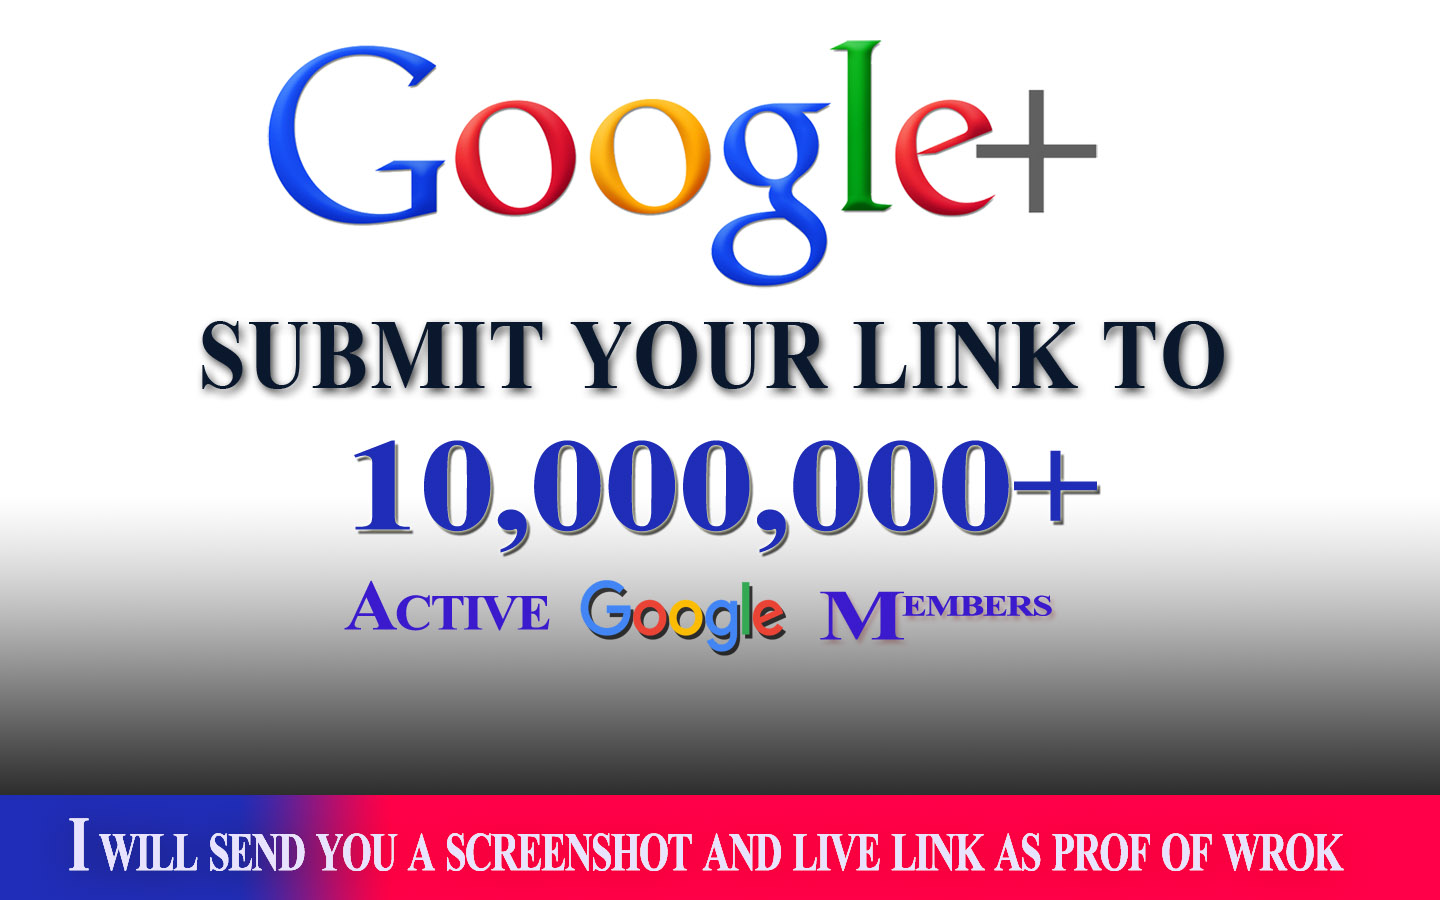 blast your link to 10,000,000 google plus members